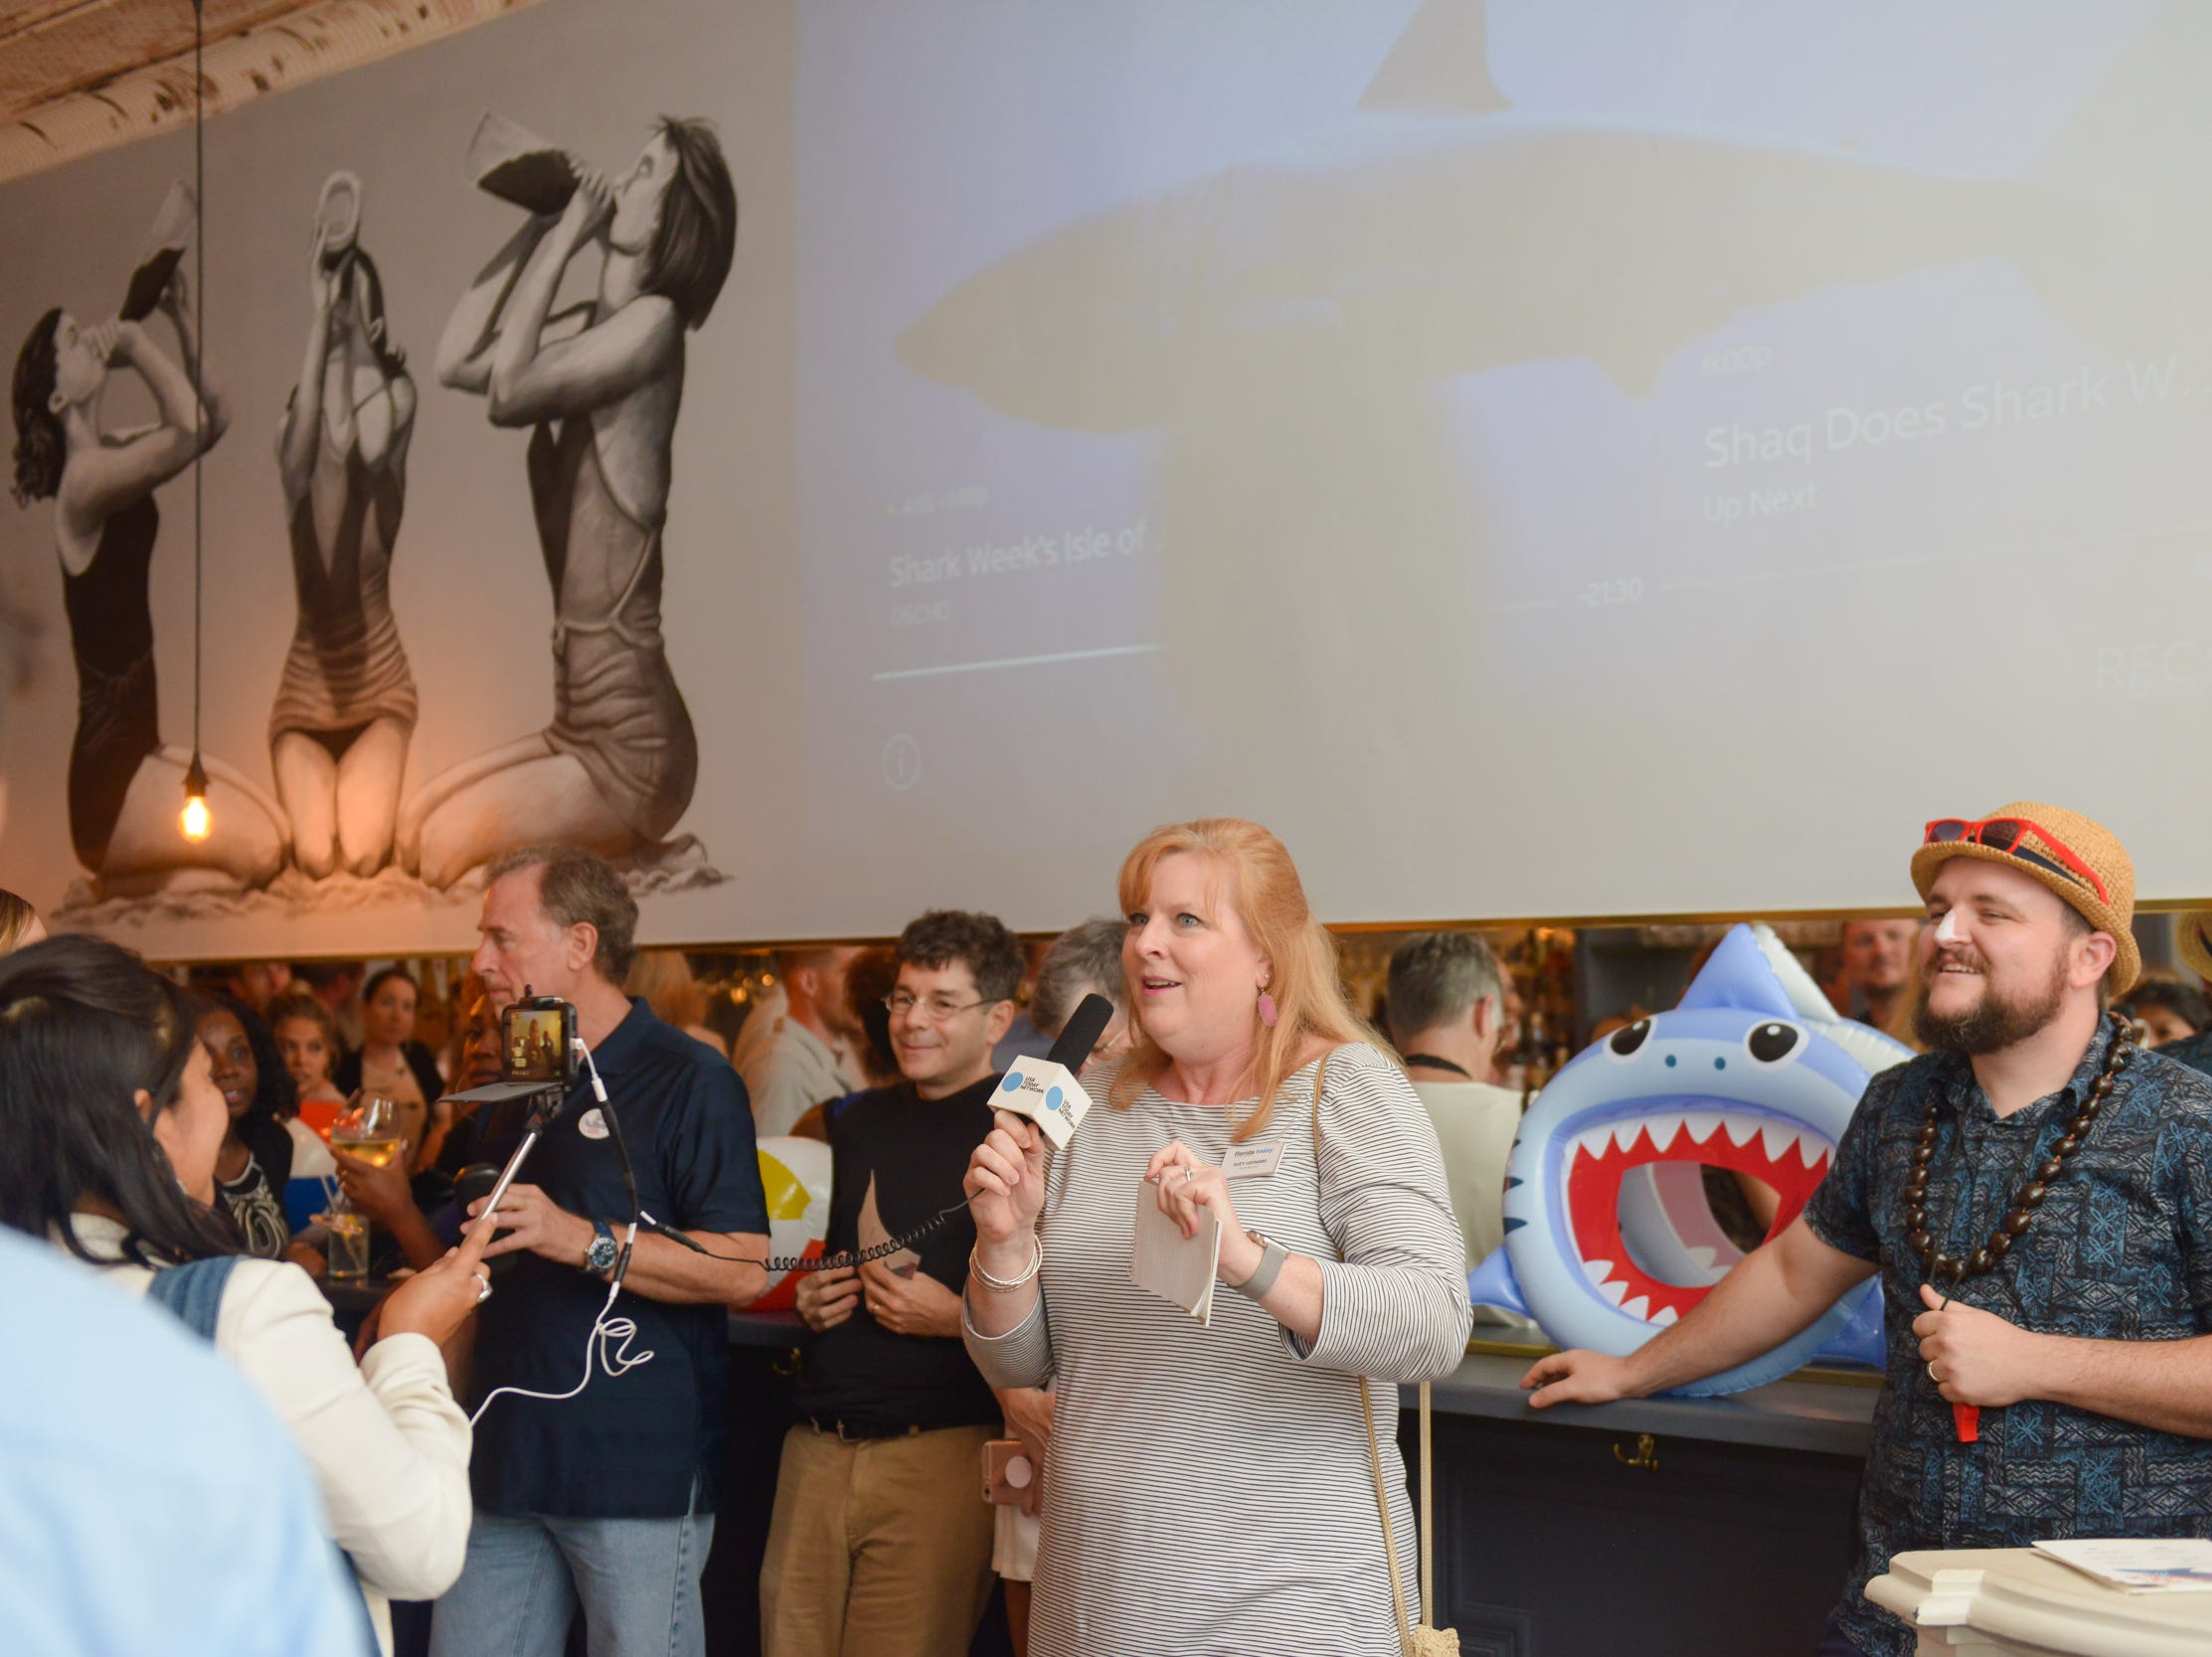 Suzy Leonard toasts to sharks at a community gathering to kick off Shark Week, hosted by Florida Today at Crush XI in downtown Melbourne.